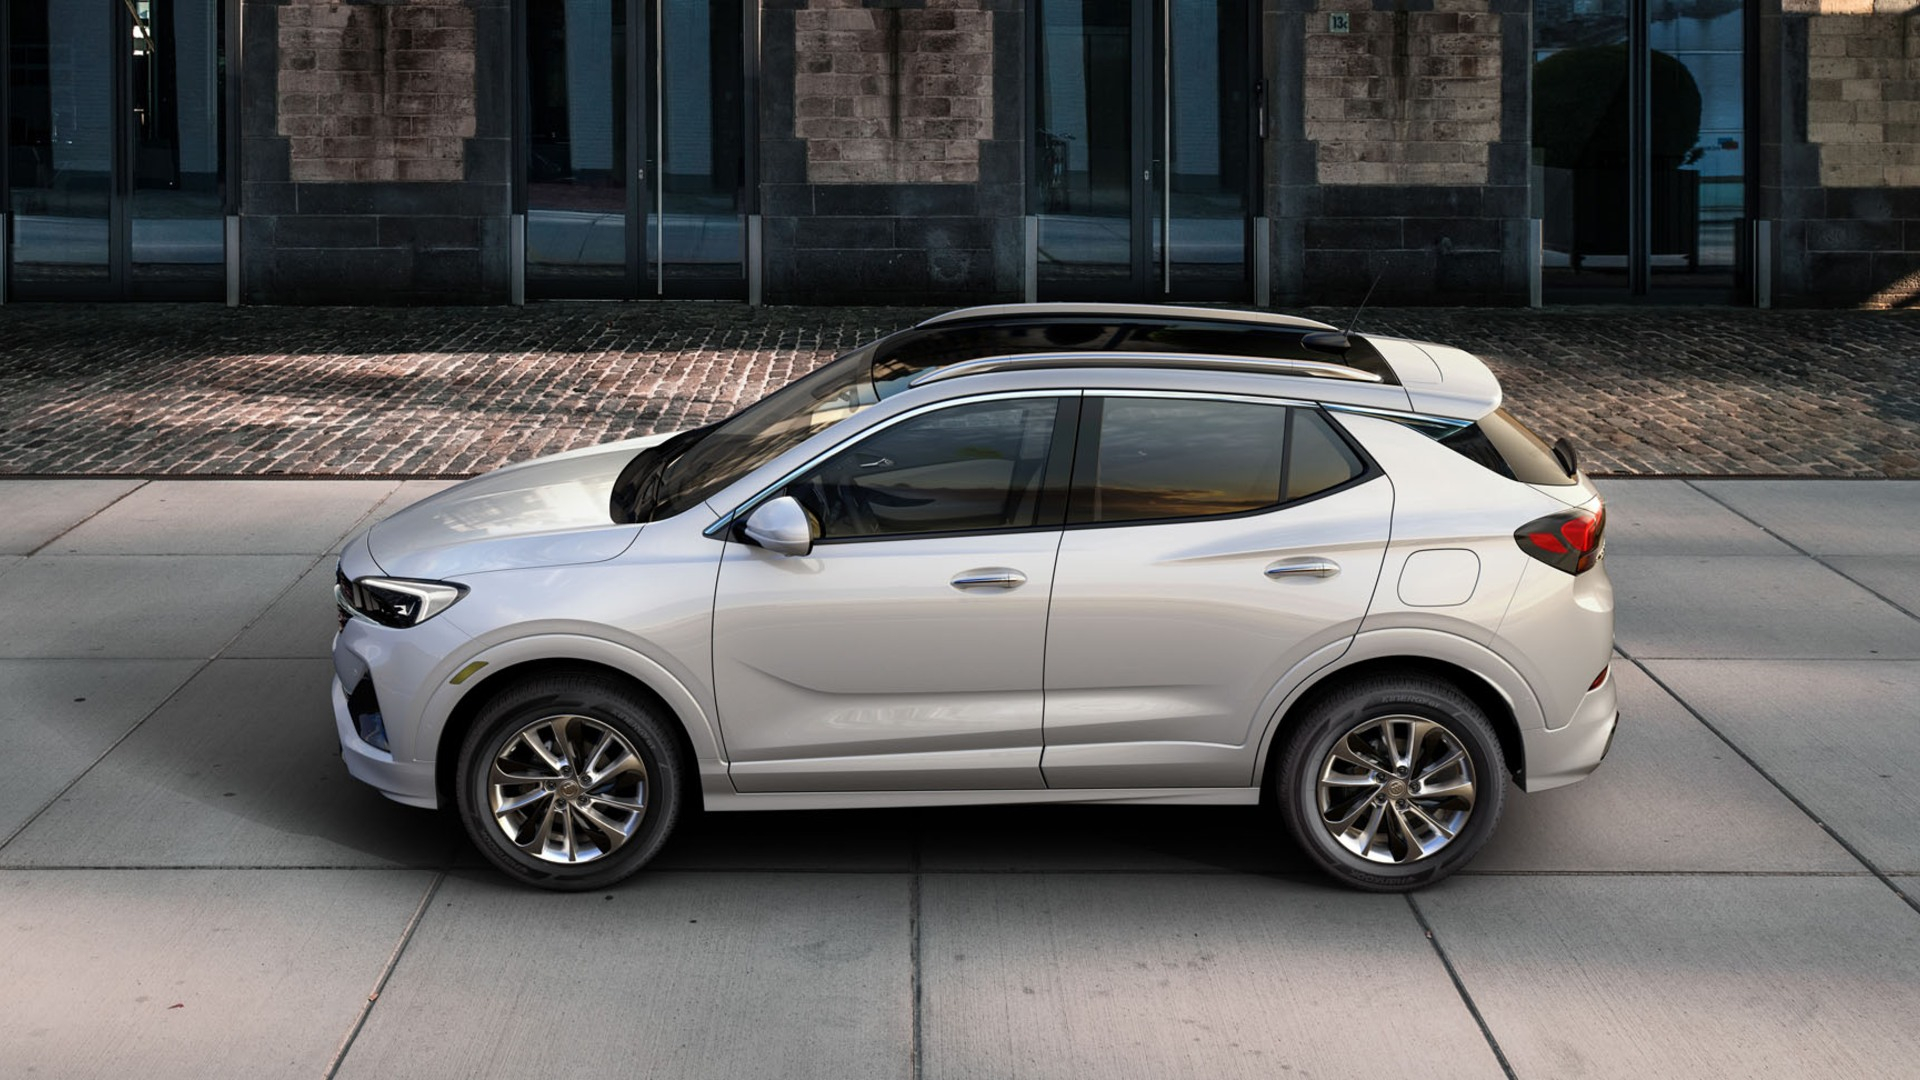 Buick Reveals U.s. Specs For The 2020 Encore Gx 2021 Buick Encore Wheelbase, 0-60, Picture